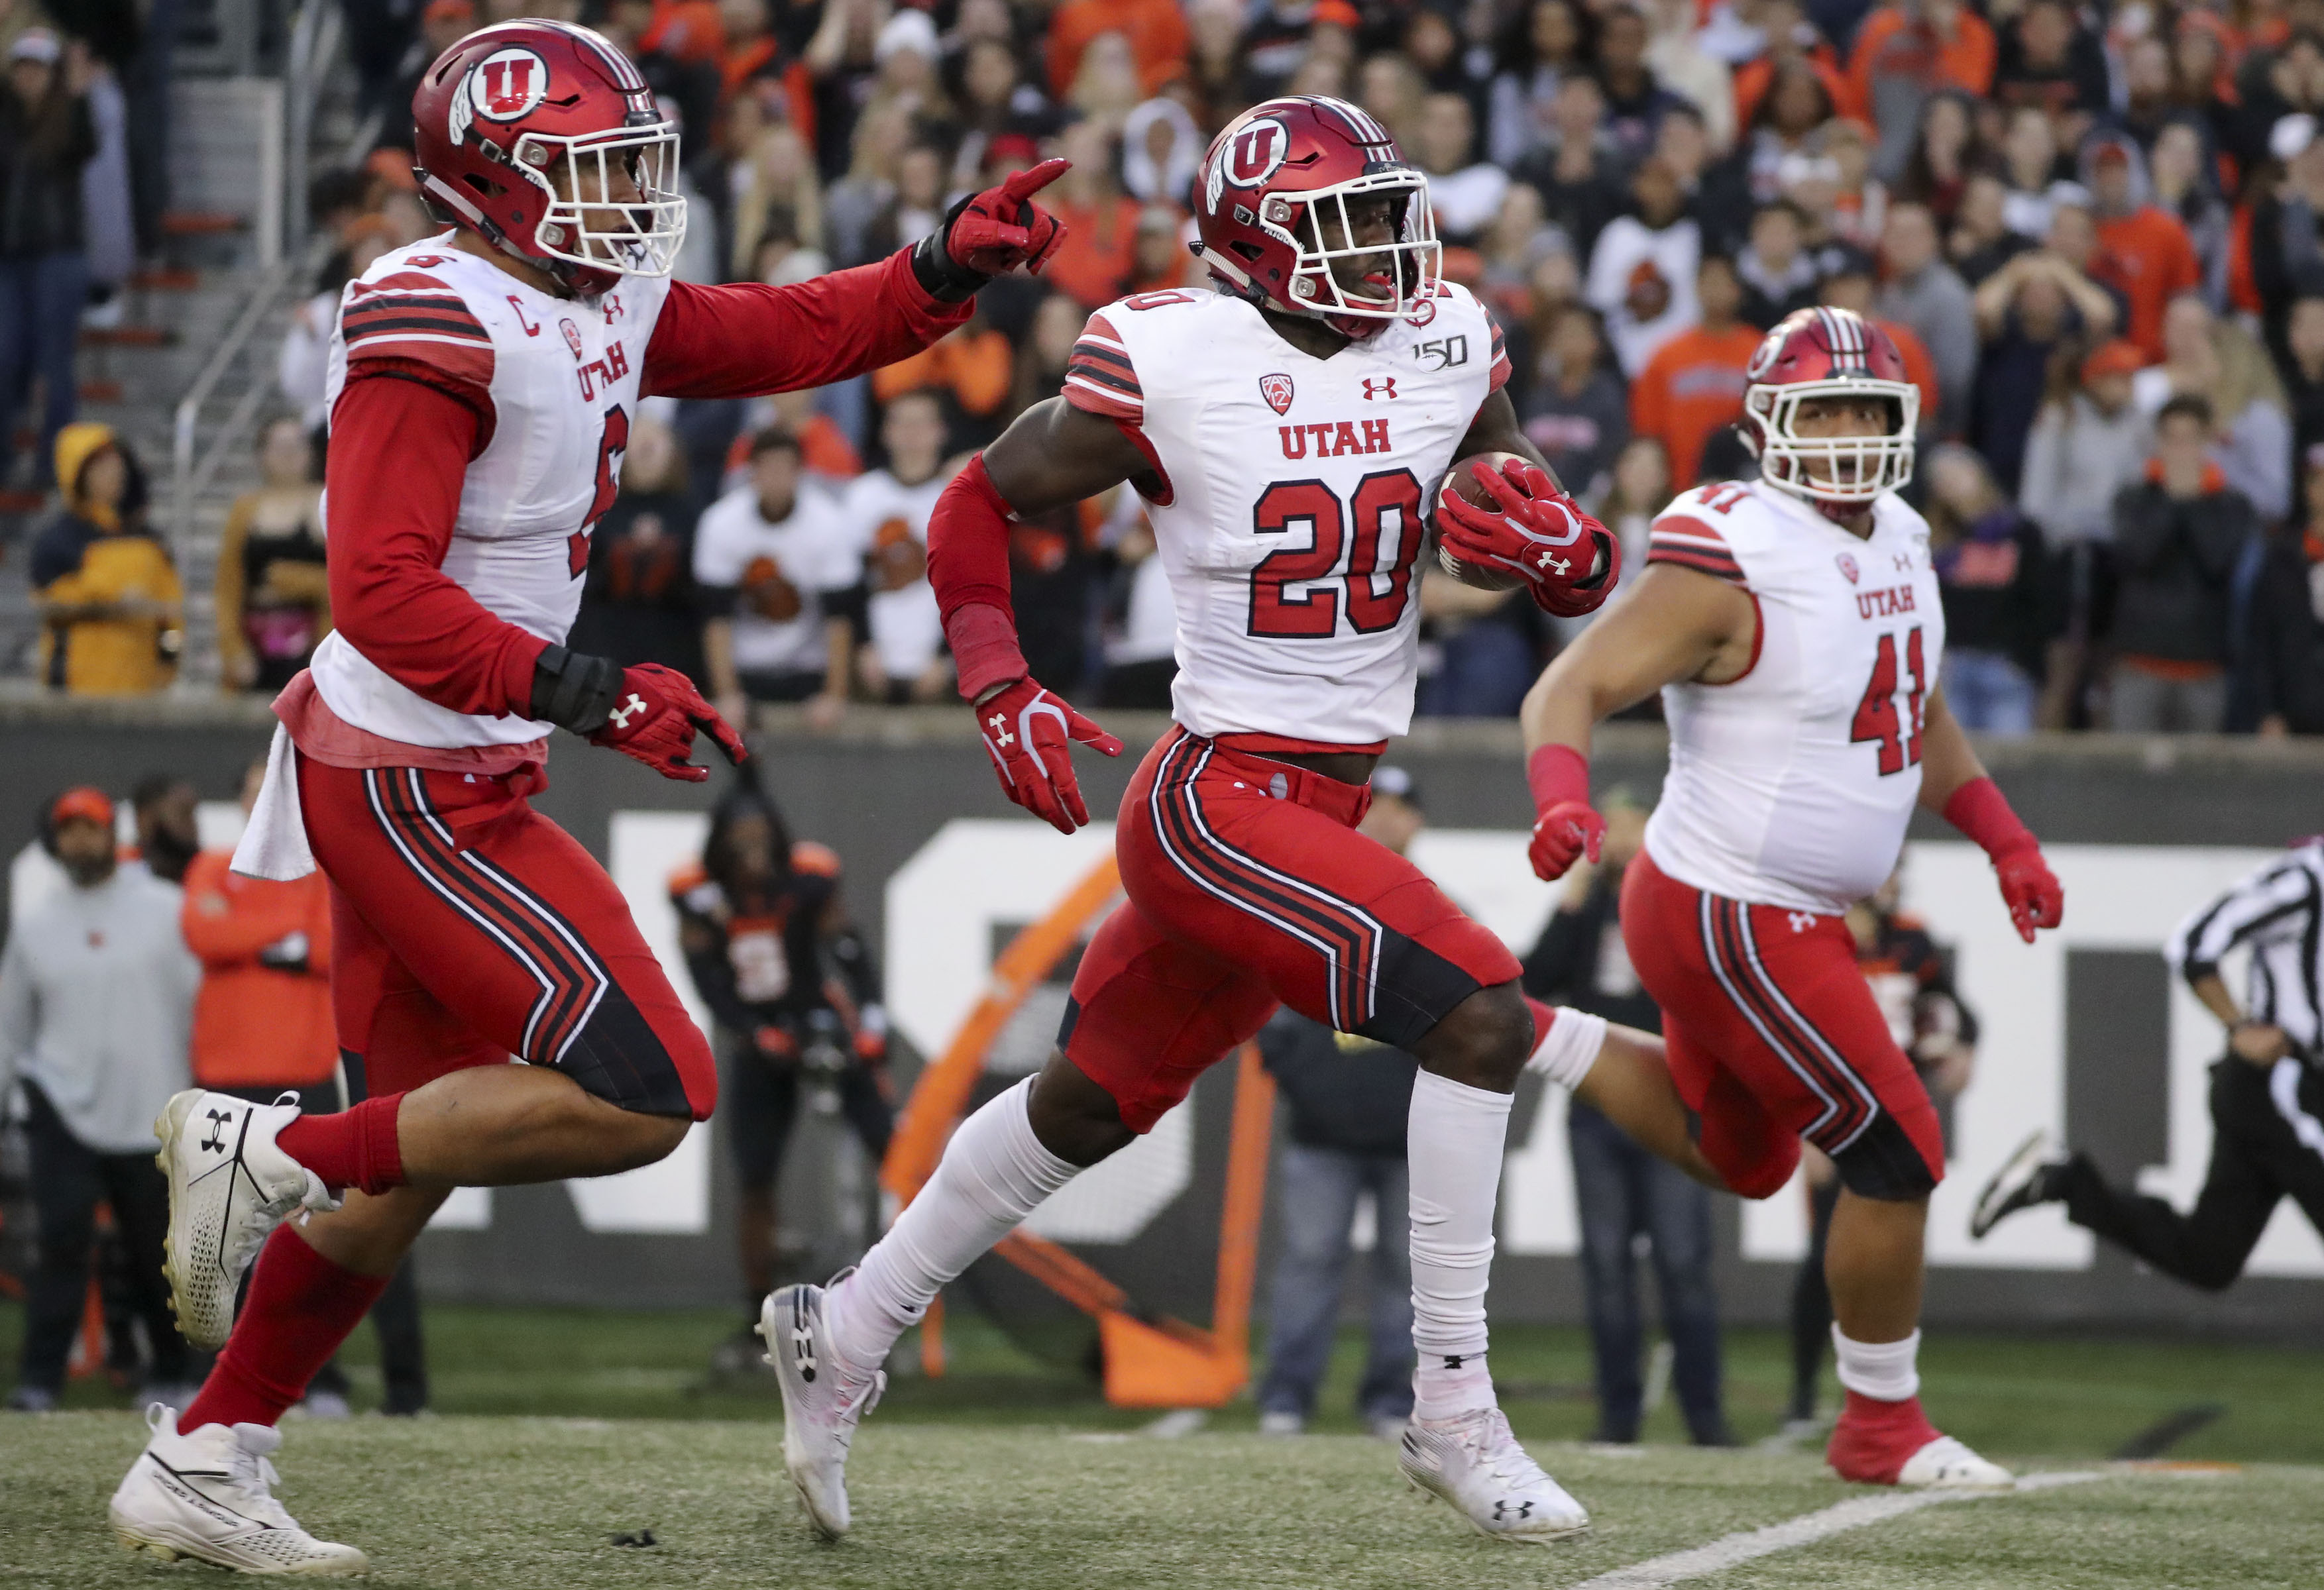 Utah Utes linebacker Devin Lloyd (20) runs for a touchdown after intercepting a pass during a football game against the Oregon State Beavers at Reser Stadium in Corvallis, Ore., on Saturday, Oct. 12, 2019. Utah won 52-7.